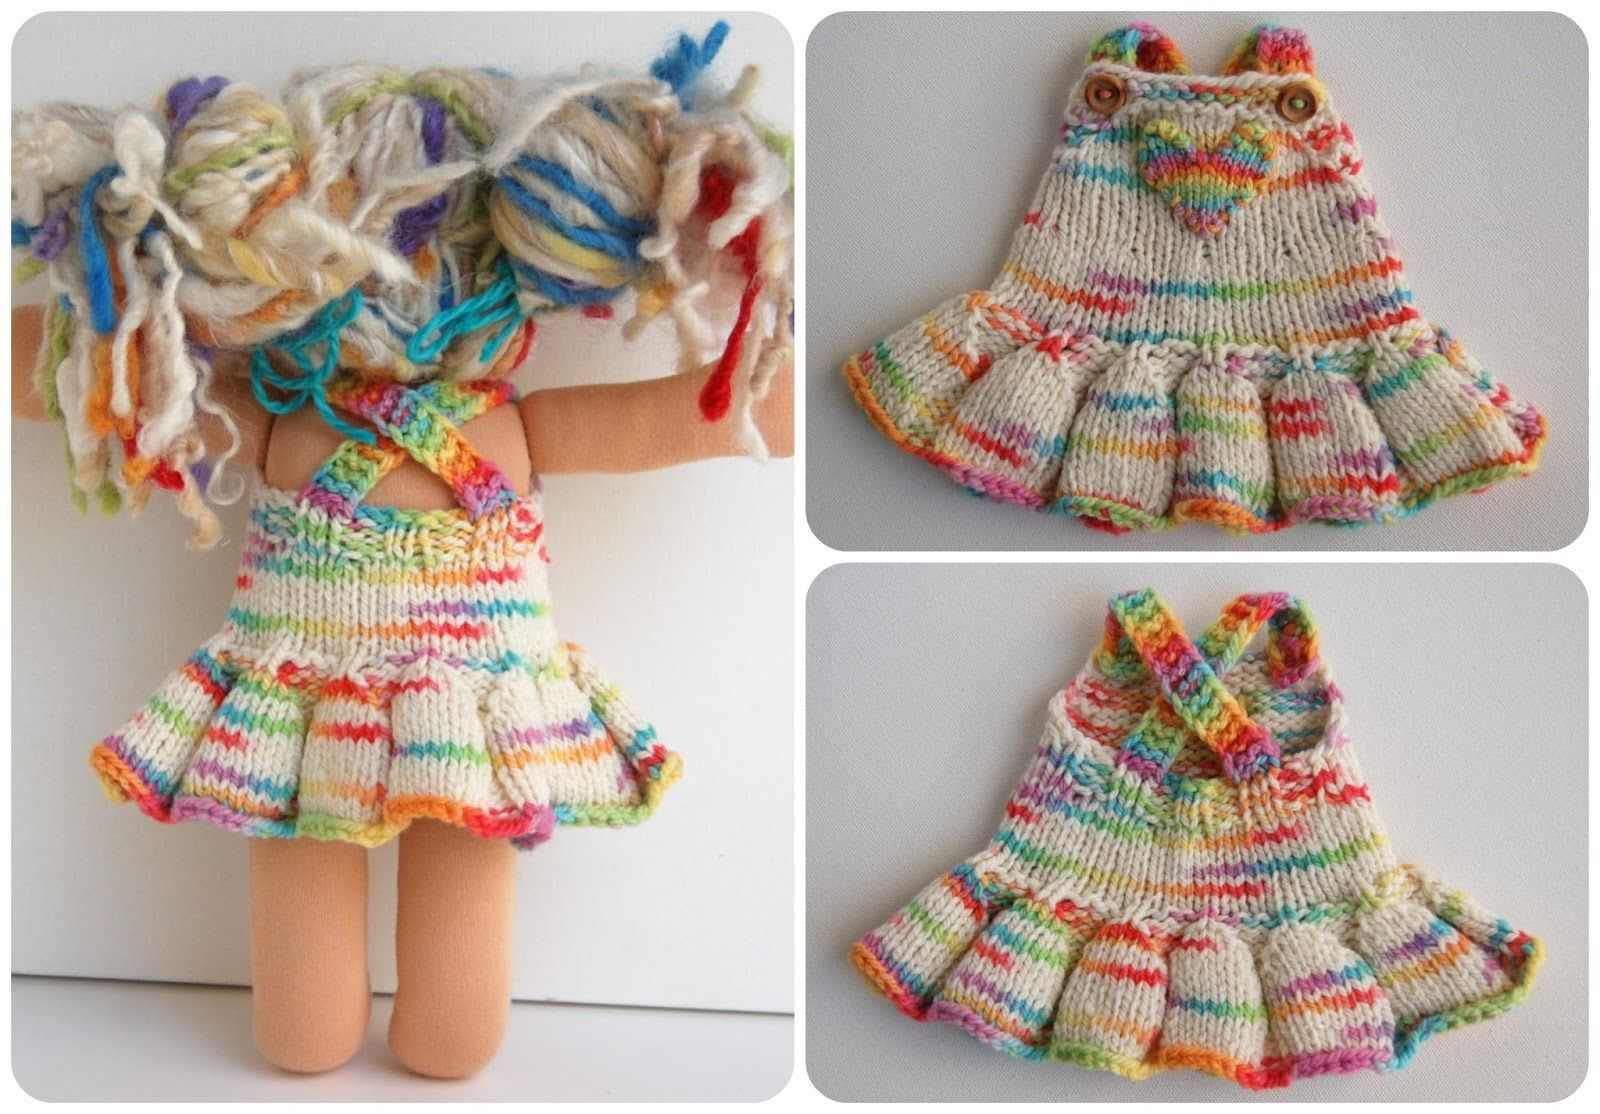 More Knitting Wheel Fashions : How to rainbow space dye yarn tutorial spinning wheel roving and